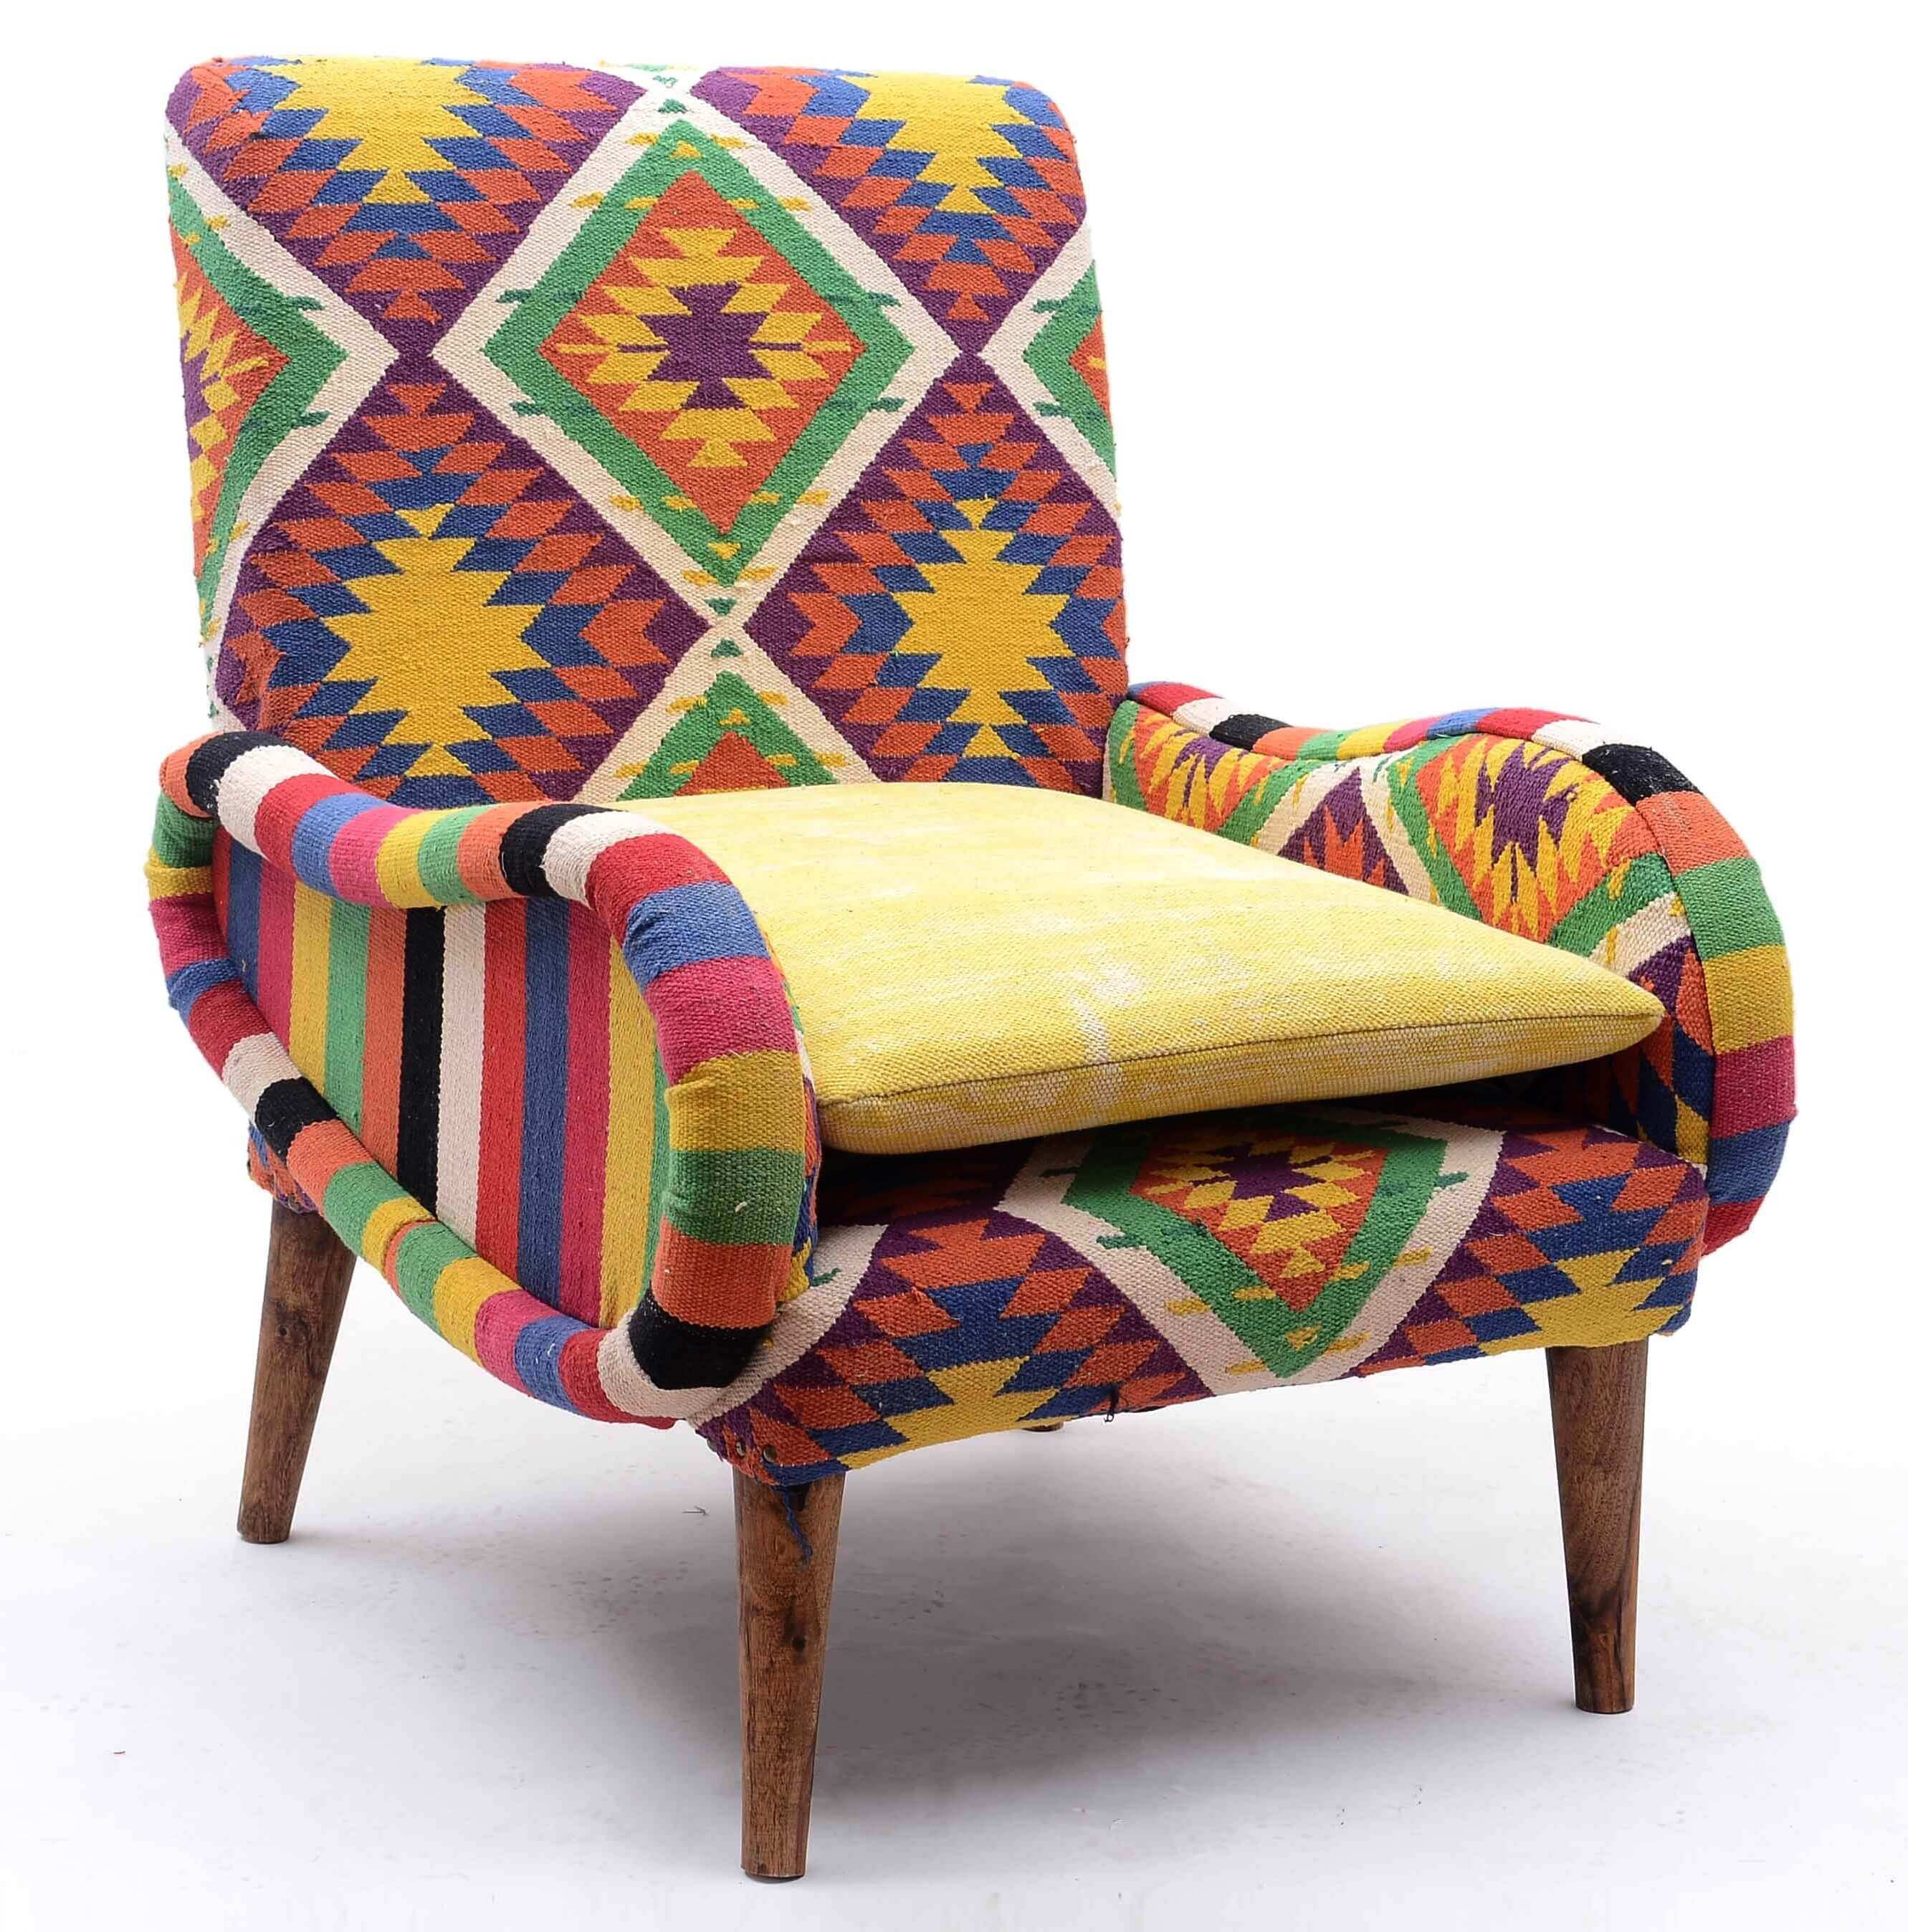 Marvelous Colorful Kilim Fabric Armchair Download Free Architecture Designs Rallybritishbridgeorg